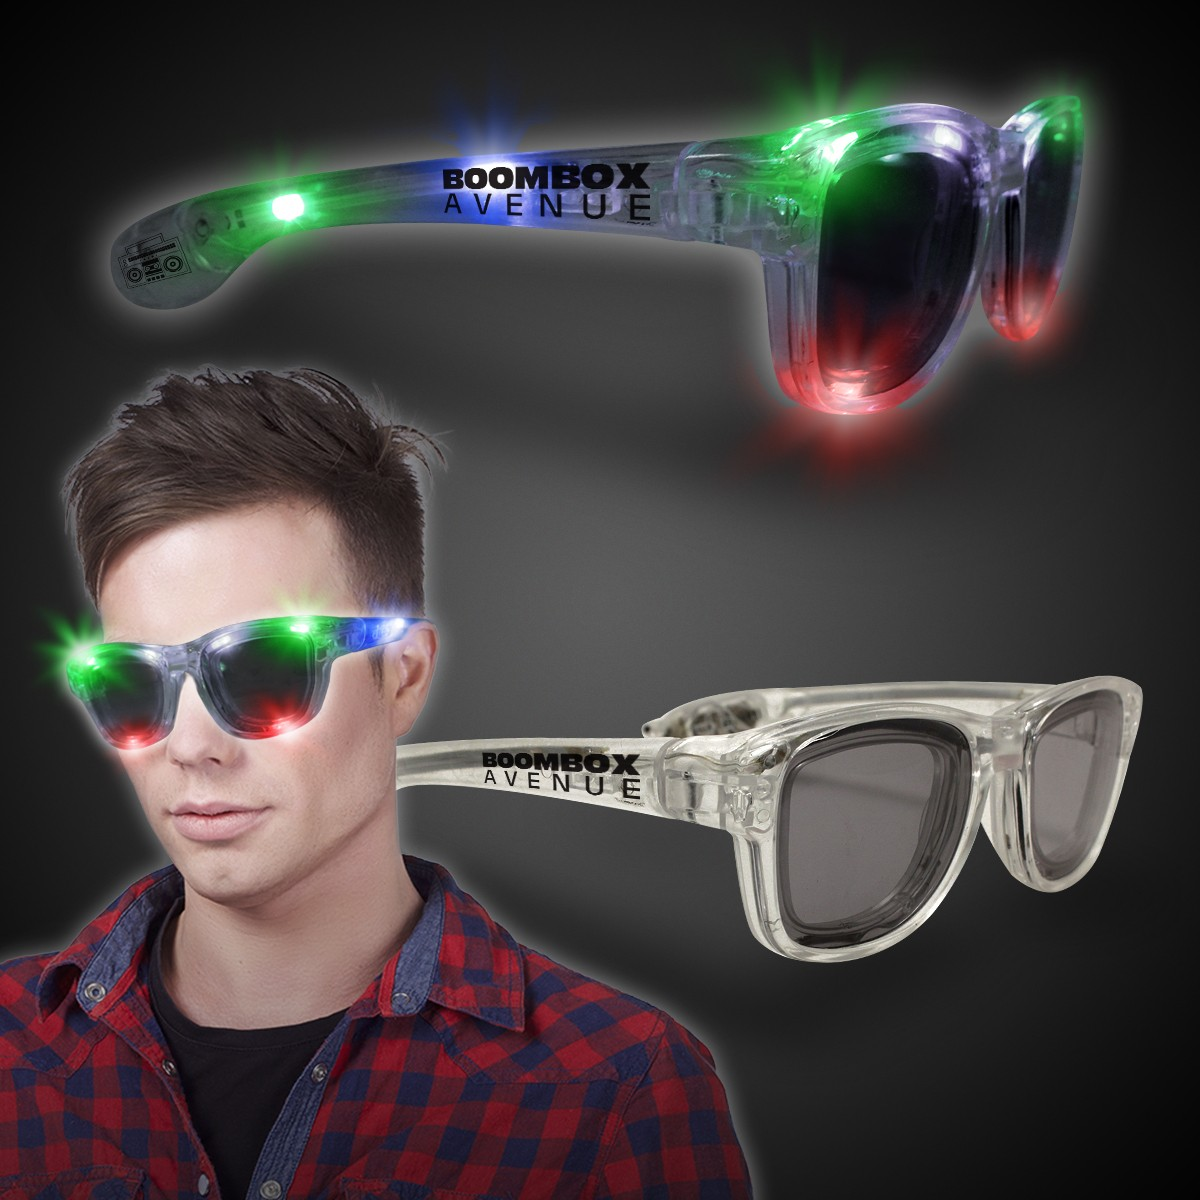 Multi Color LED Classic Retro Sunglasses with Sound Option